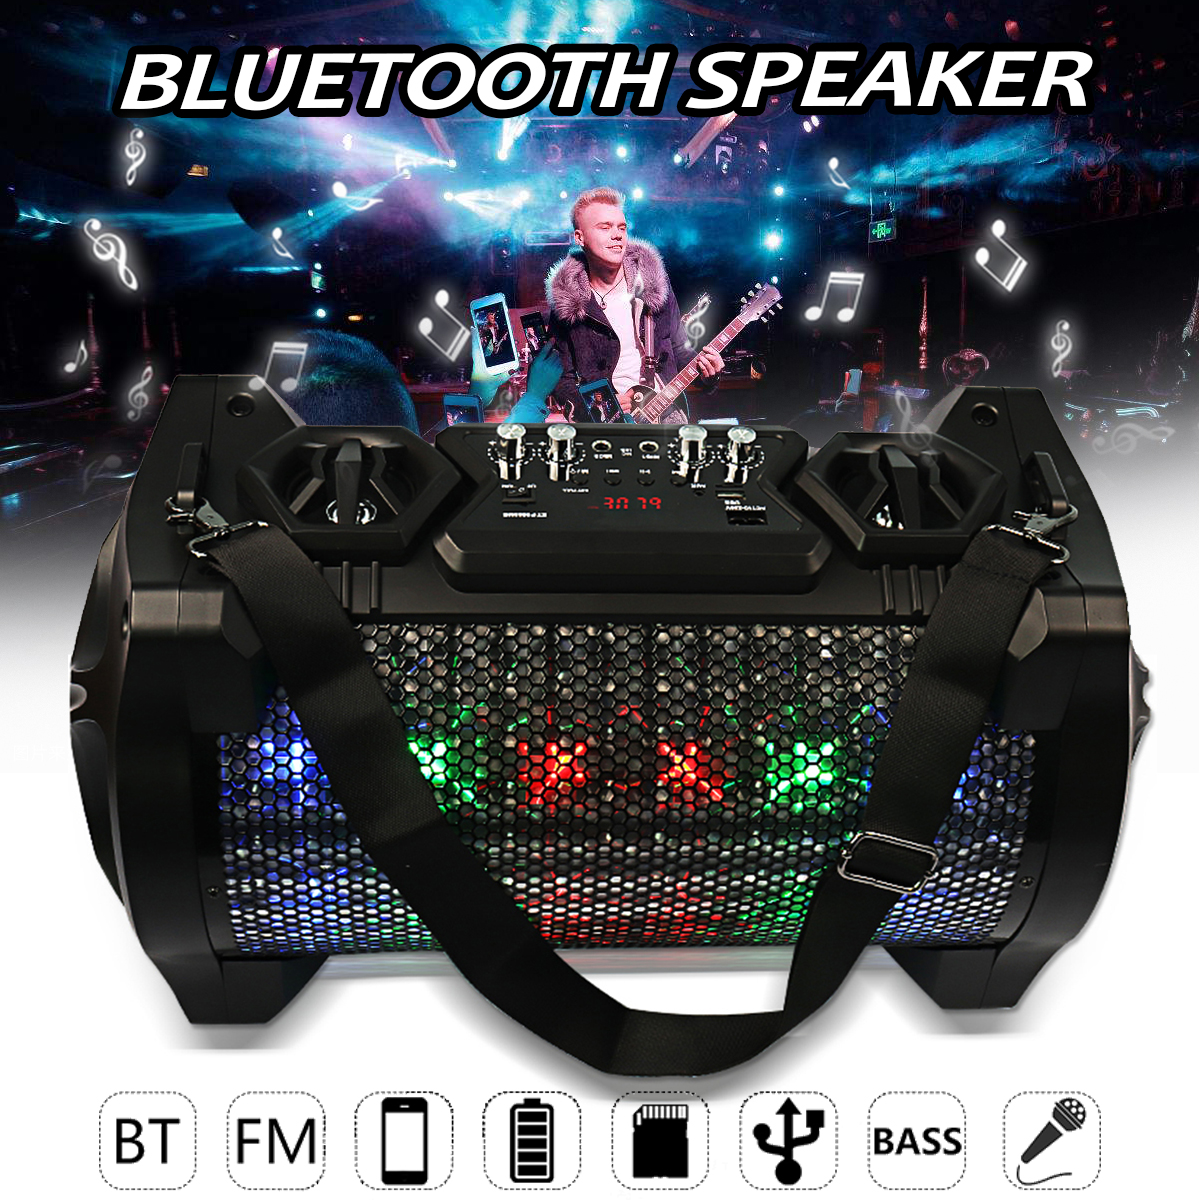 Portable Wireless Bluetooth Speaker Bass Stereo FM Radio AUX/USB/TF Card Loudspeaker Subwoofer Handfree For Outdoor Music Player 4 2 bluetooth speaker hi fi portable wireless box mp3 music player receiver audio fm radio with usb aux tf card boombox column